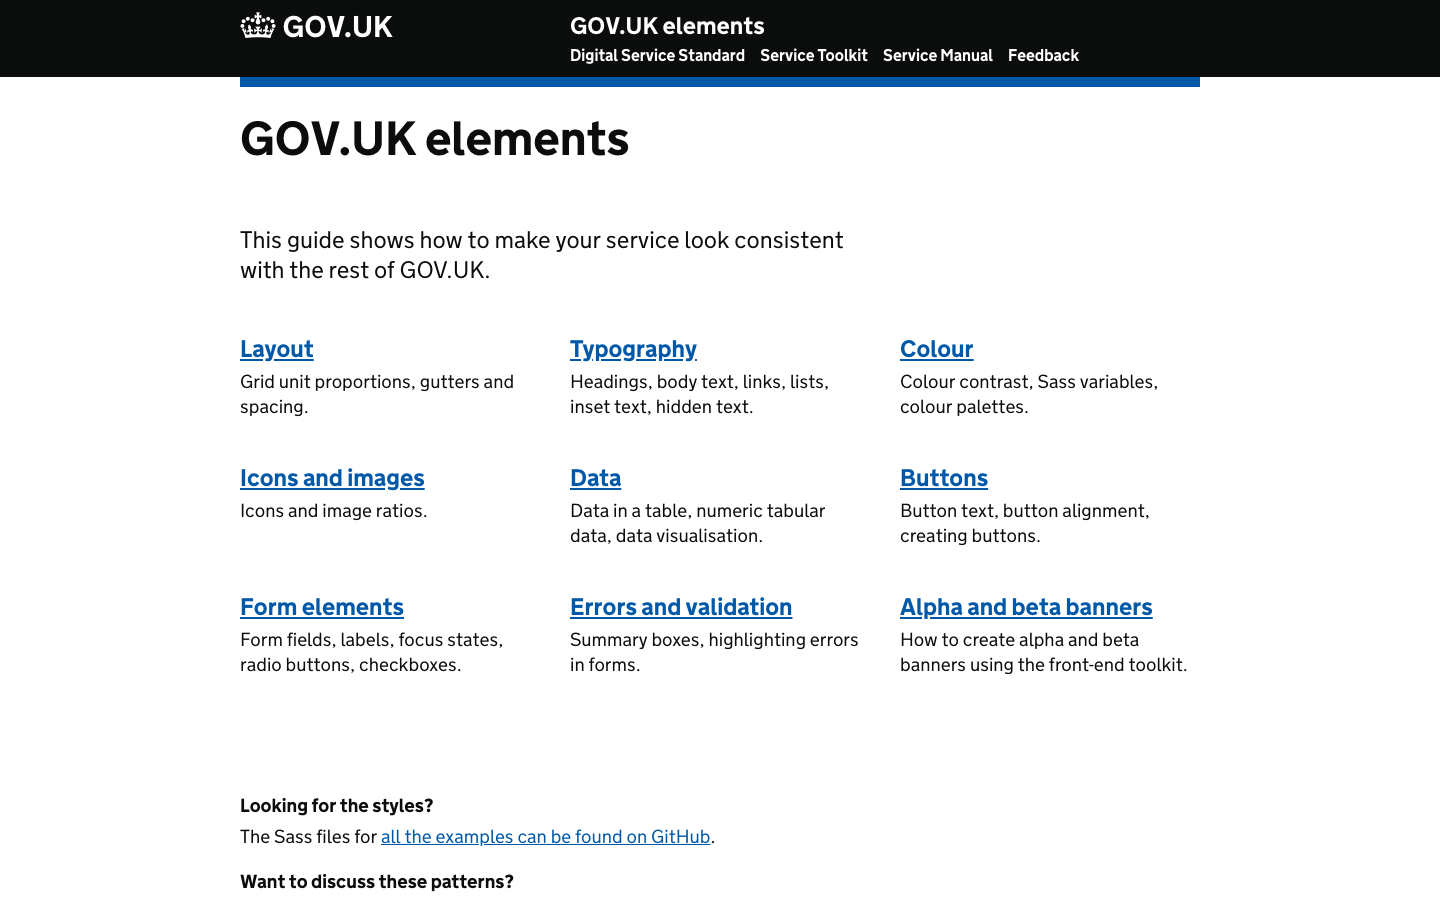 How we've made GOV.UK Elements even more accessible